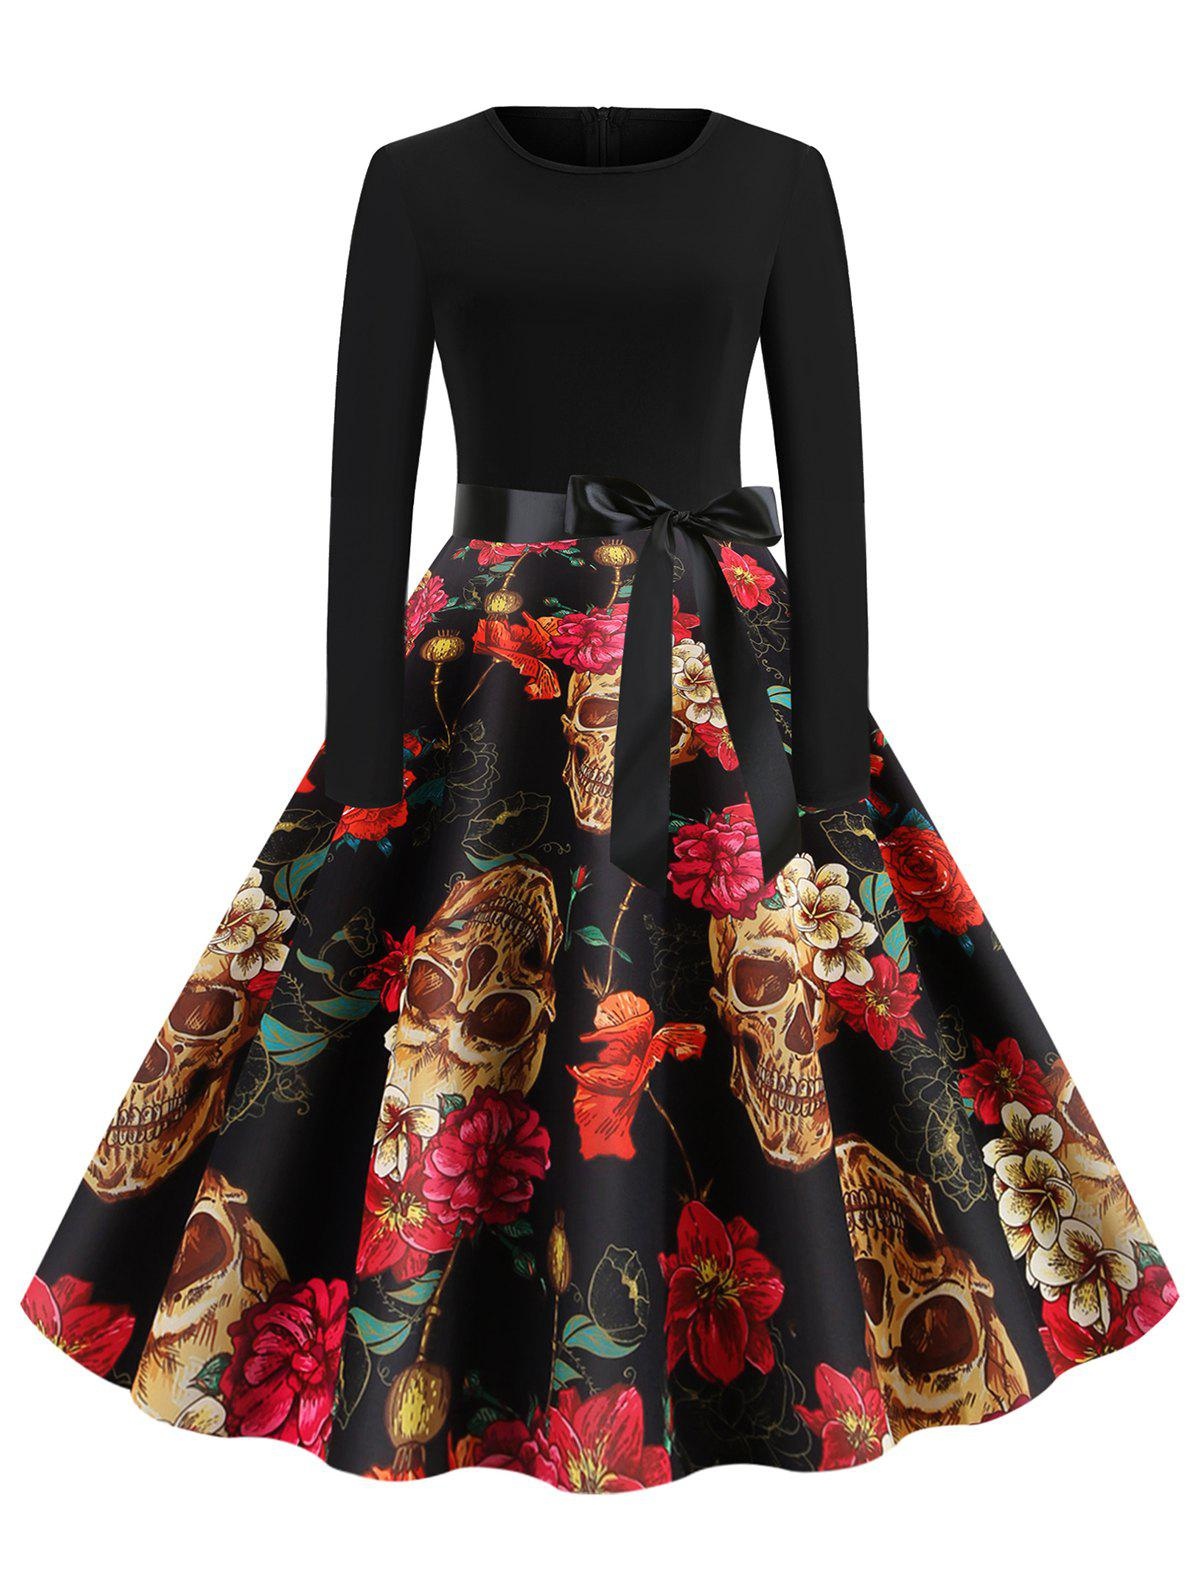 Hot Skull Floral Belted Round Neck Halloween Flare Dress